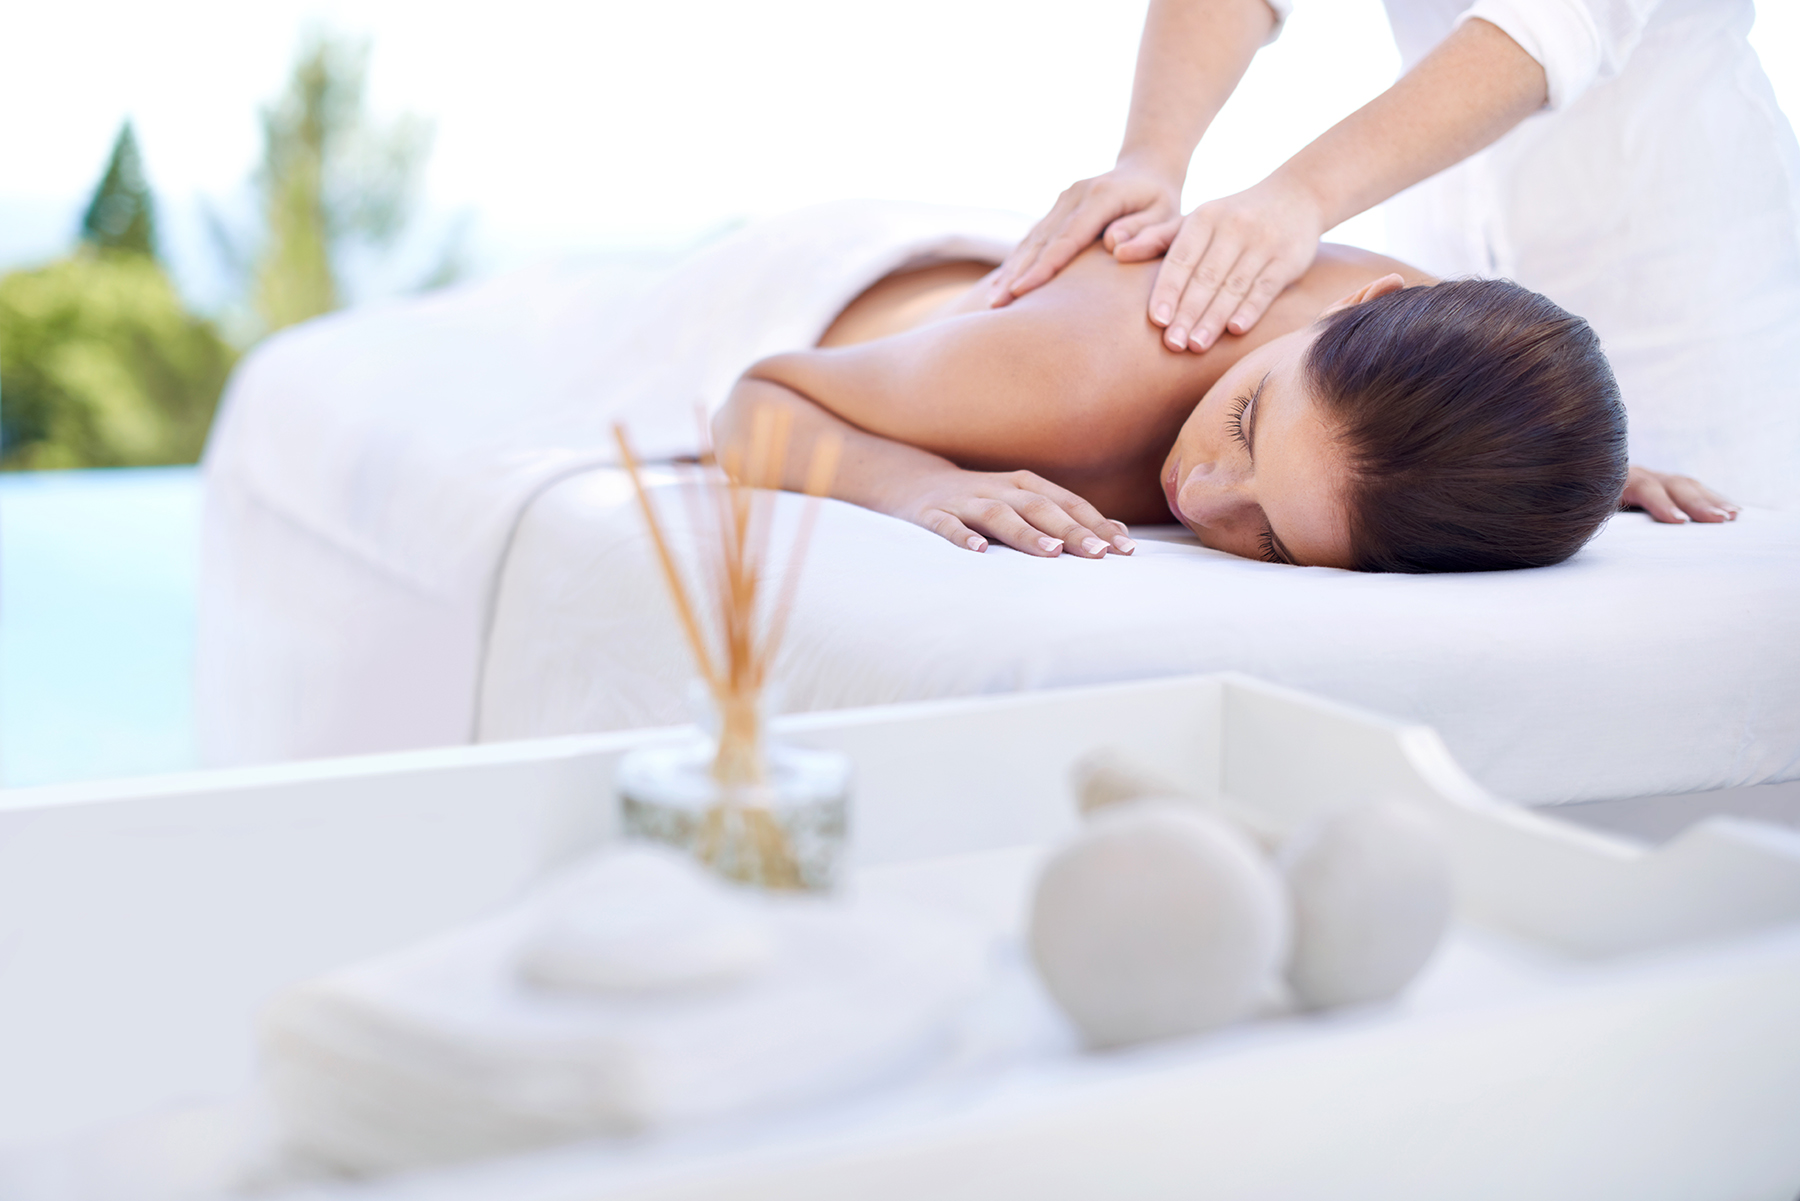 Salon Massage Paris 20 How Much To Tip For Massage And Other Spa Services Real Simple